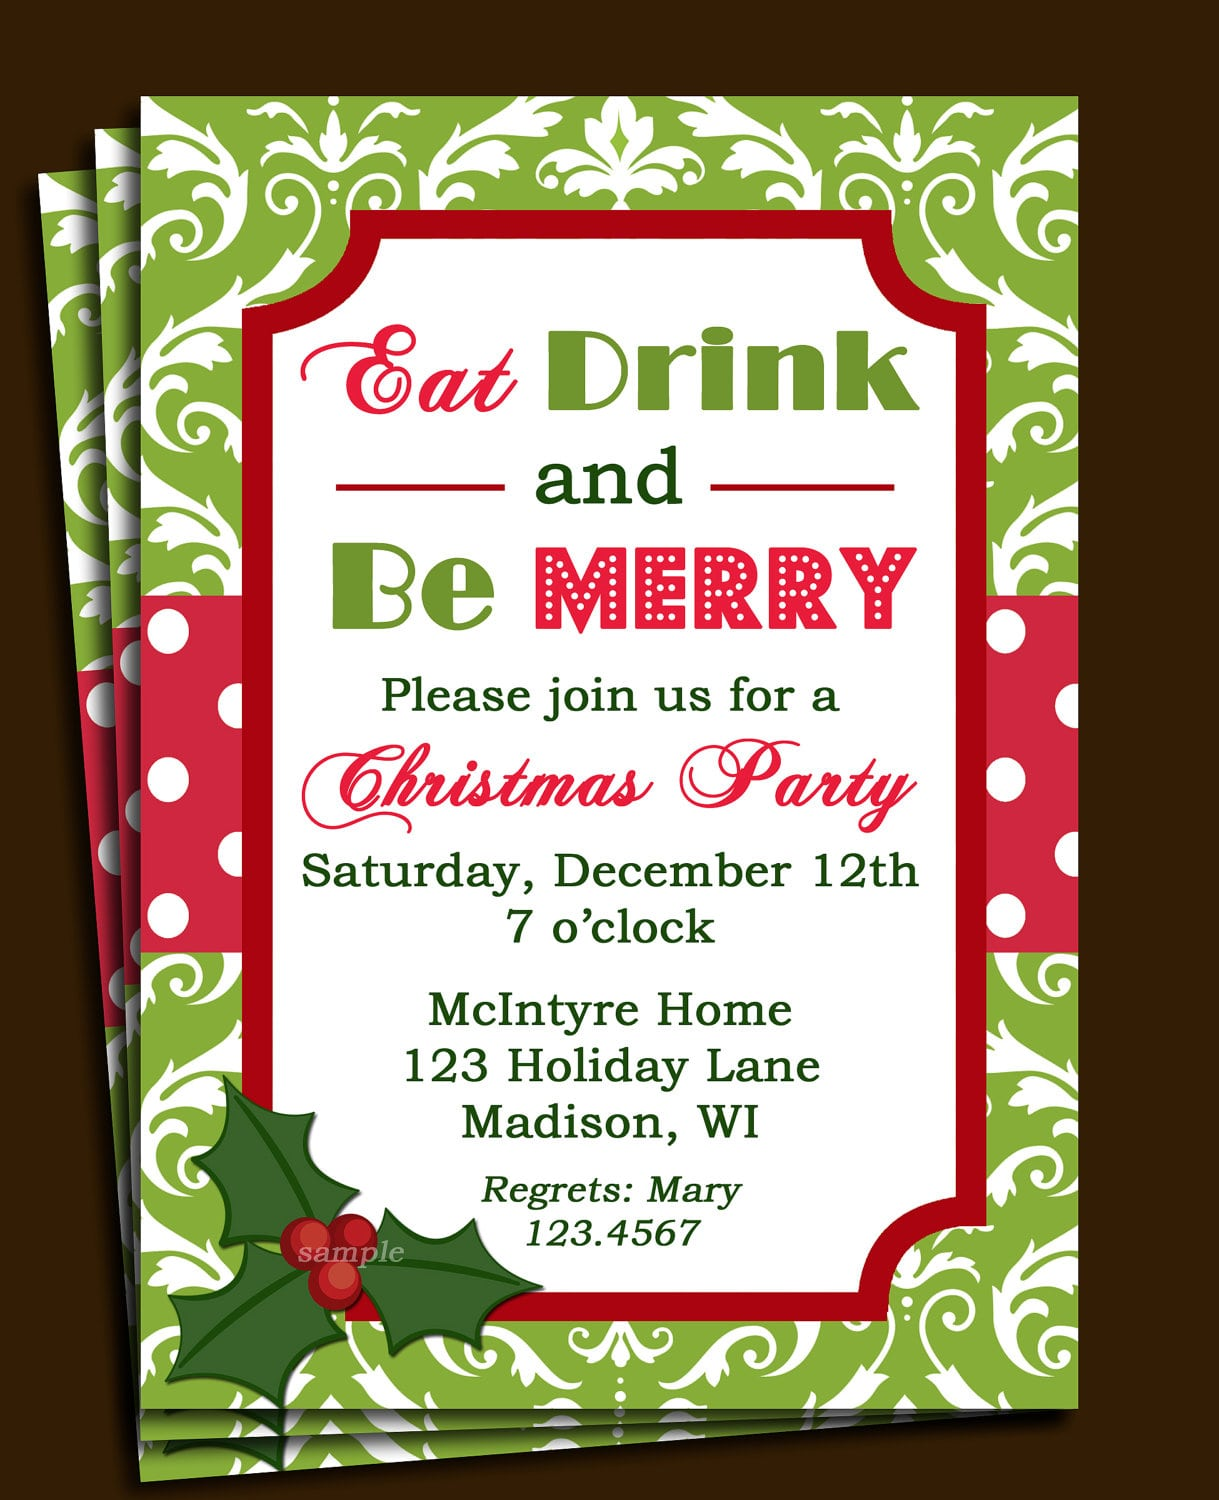 Lunch Invitation Template Free - Party invitation template: elegant christmas party invitation template